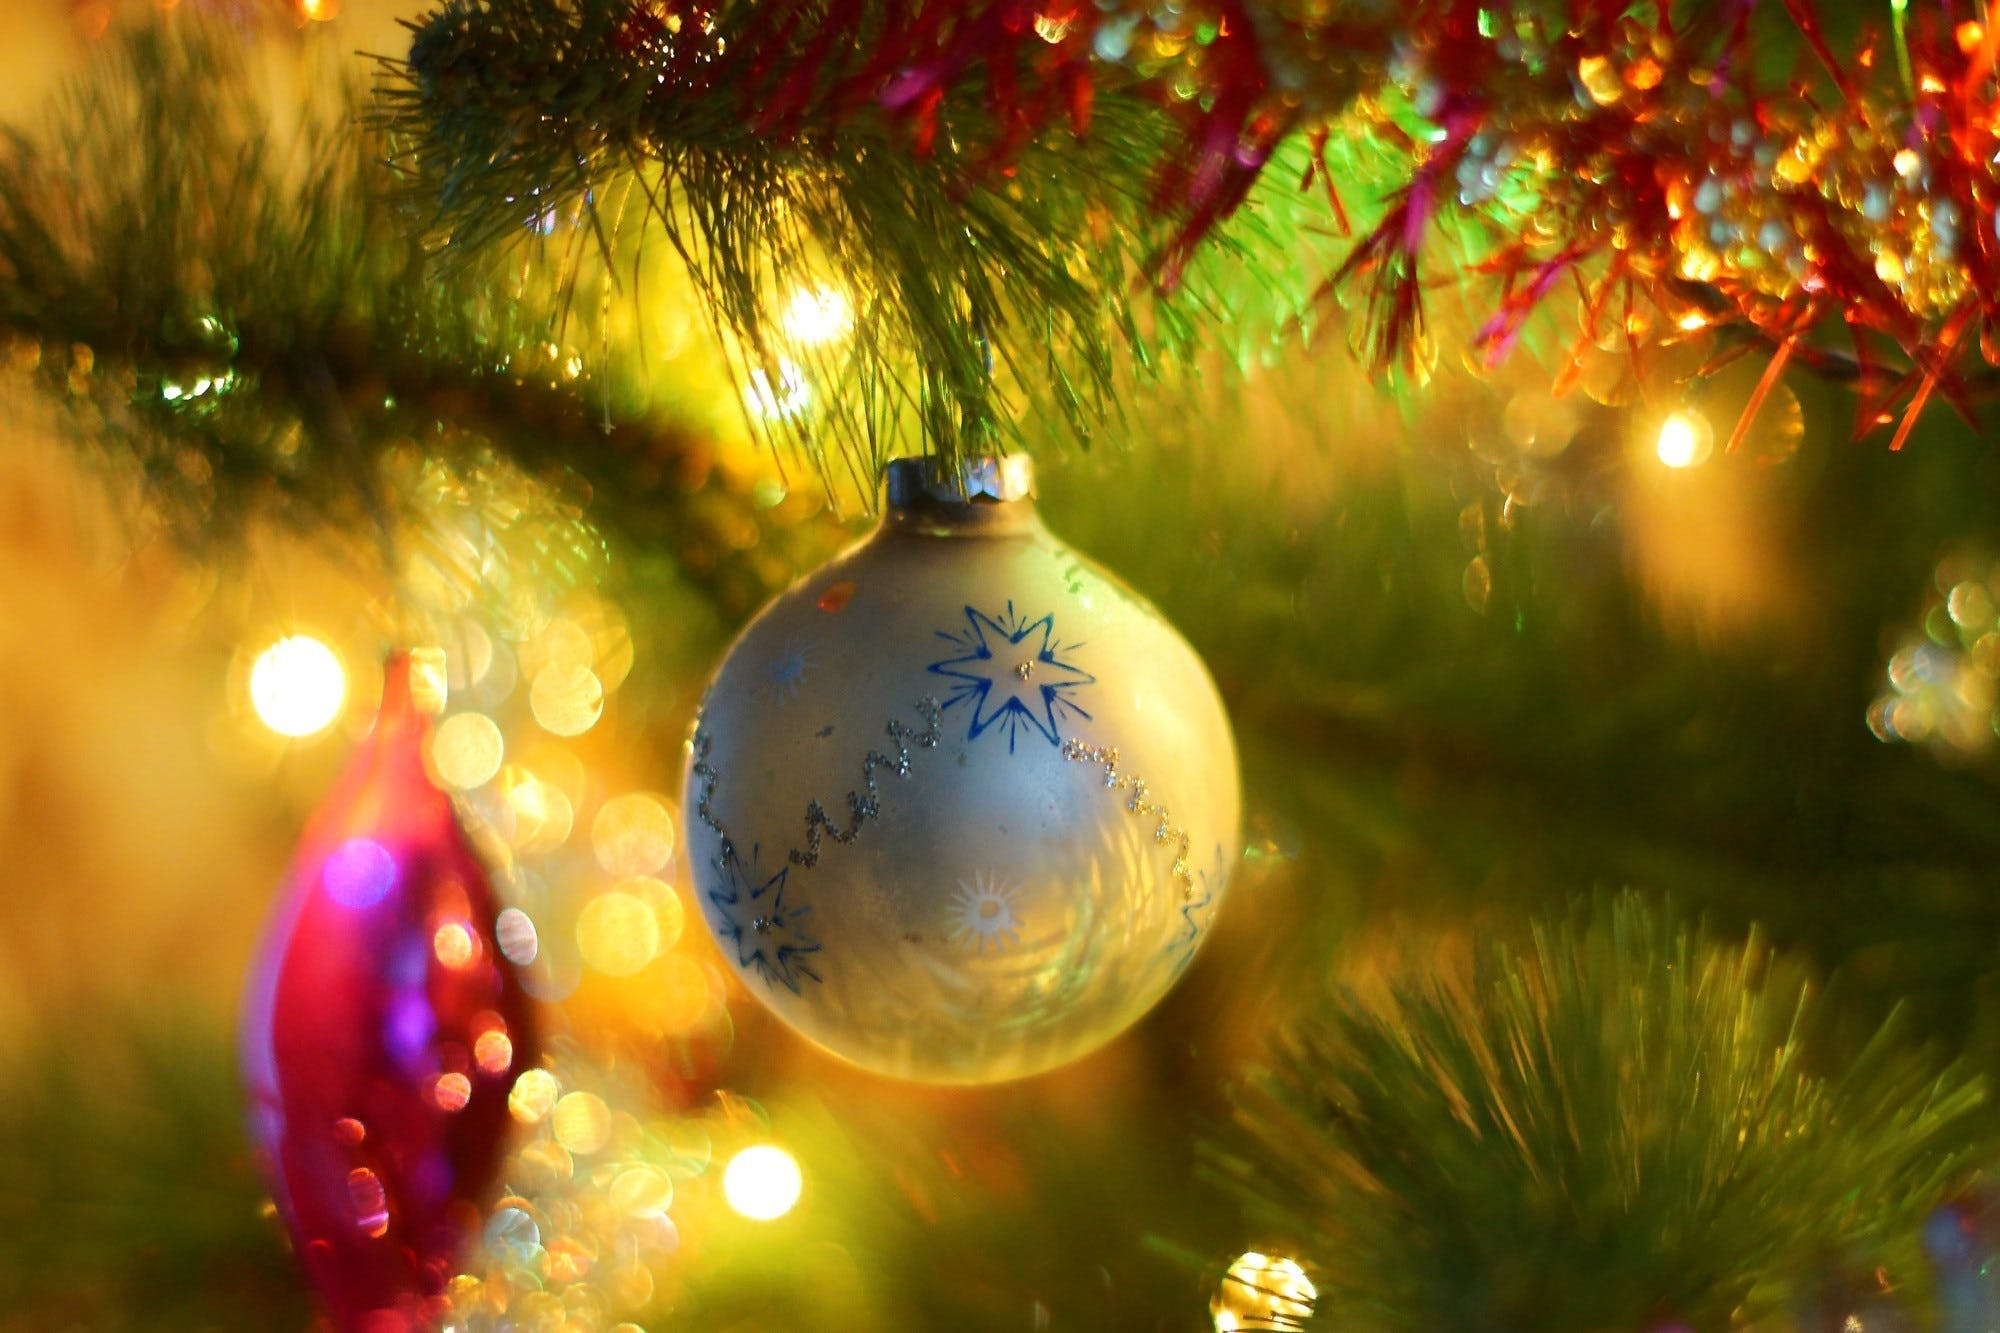 Selective Photography of Christmas Bauble